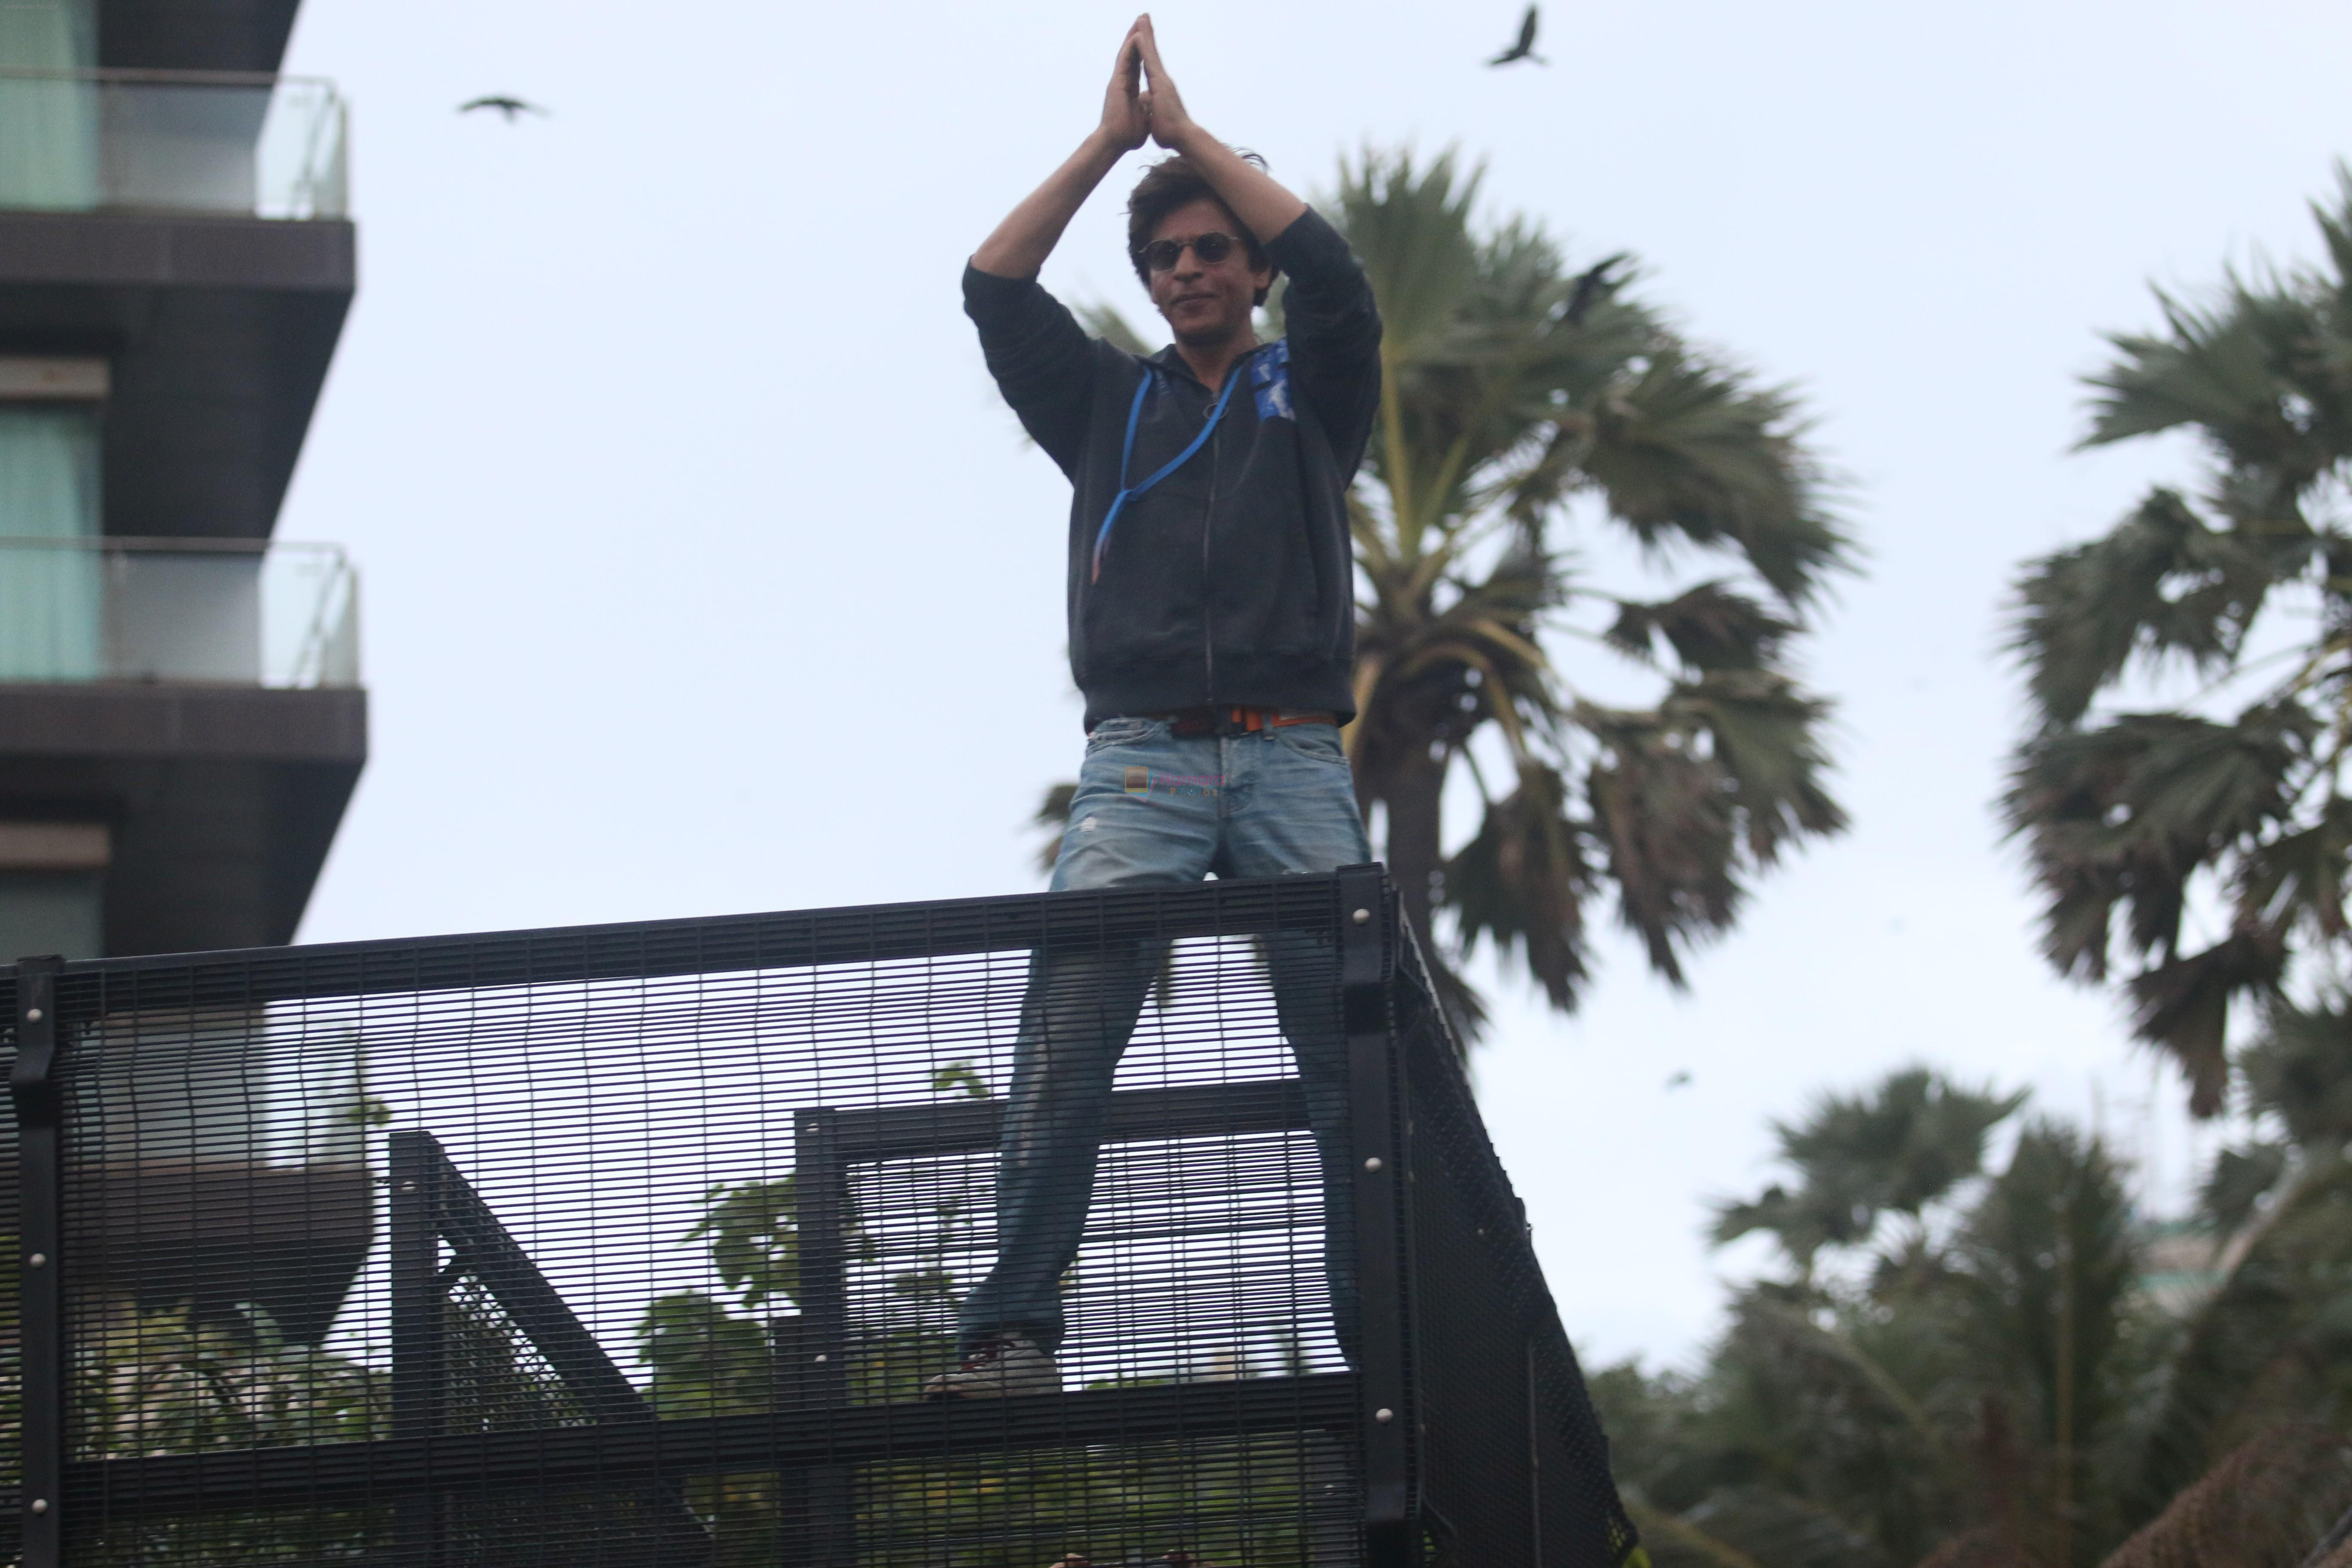 Shahrukh Khan waves to fans on the occasion of Eid at his bandra residence on 12th Aug 2019